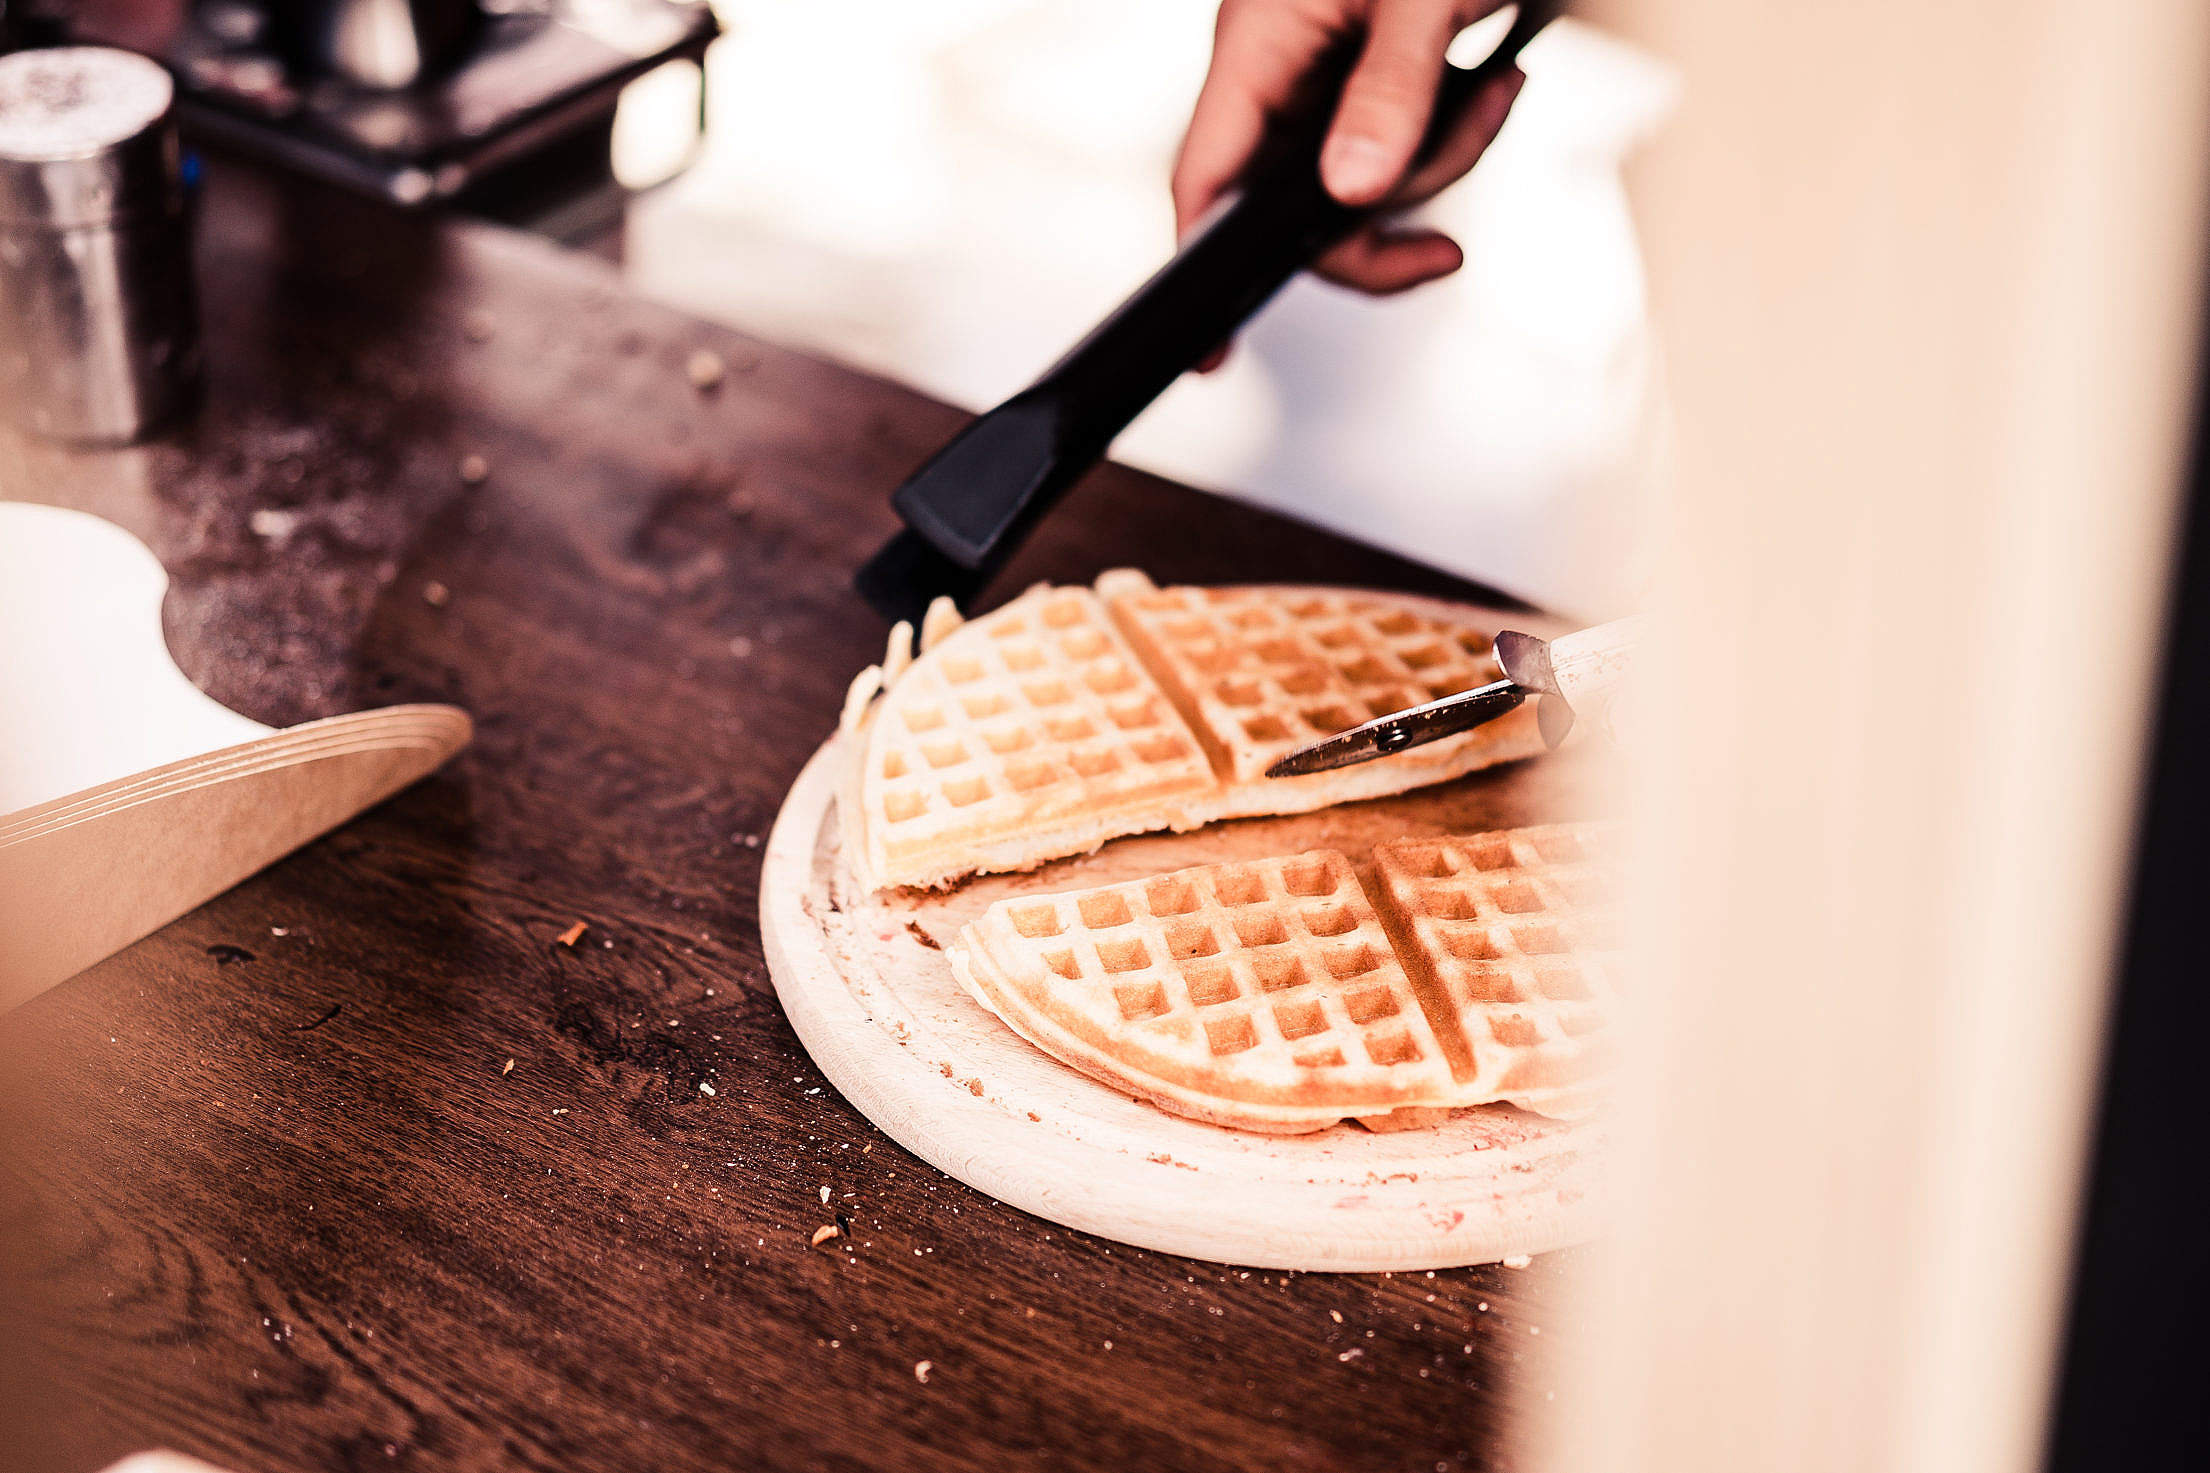 Making Waffles Cutting Them into Pieces Free Stock Photo